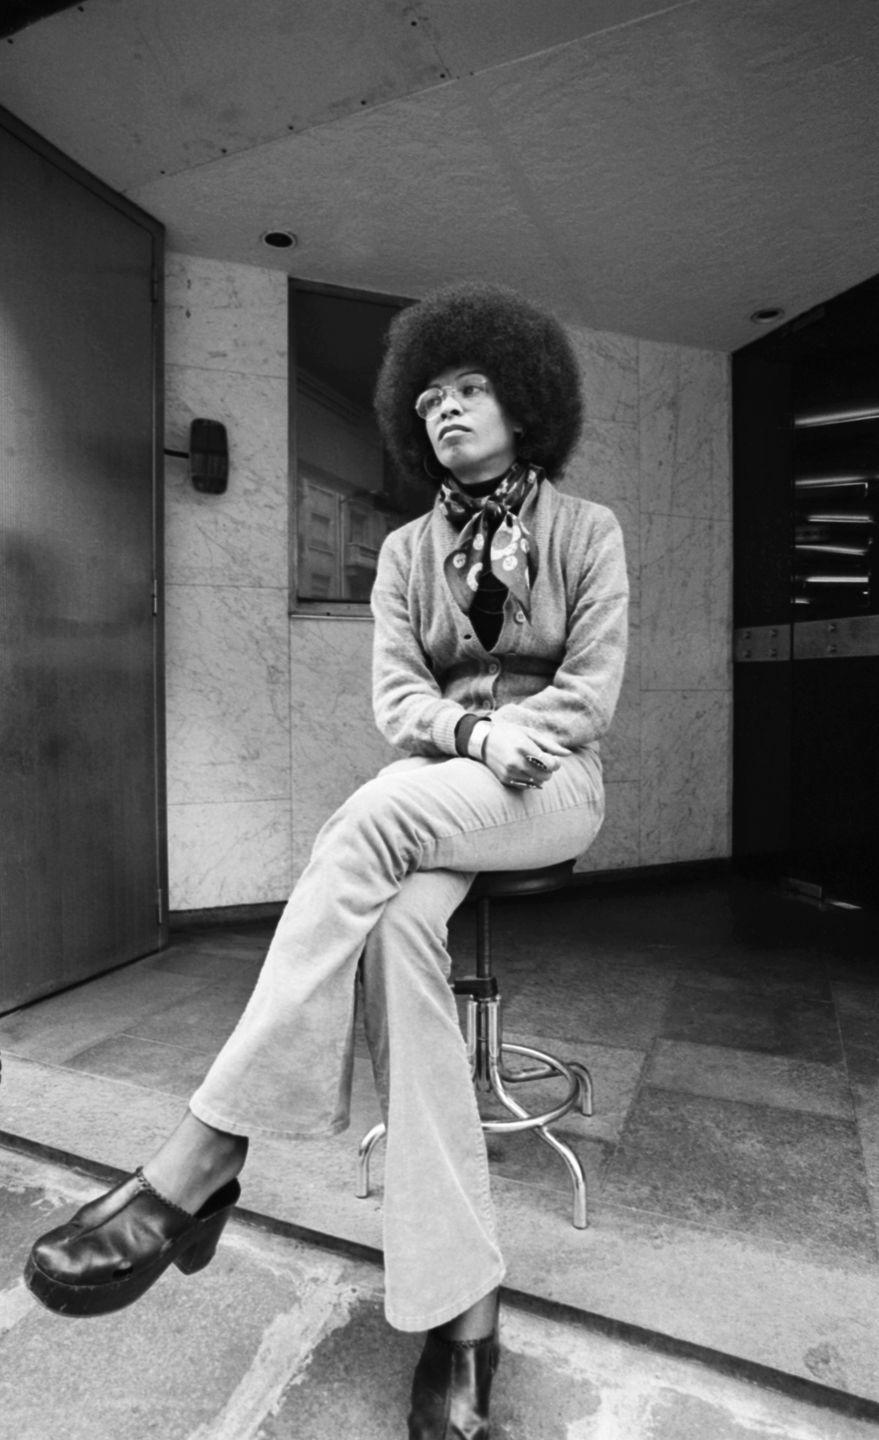 <p>Born in 1944 in Birmingham, Alabama, to schoolteacher parents, Angela Davis has been active in justice for Black prisoners from the sixties onward. Davis is currently a professor emerita at the University of California at Santa Cruz and has authored several books on race and politics, including <em>Women, Race & Class</em> and <em>Women, Culture, and Politics</em>. Here, she is photographed in May of 1975.</p>